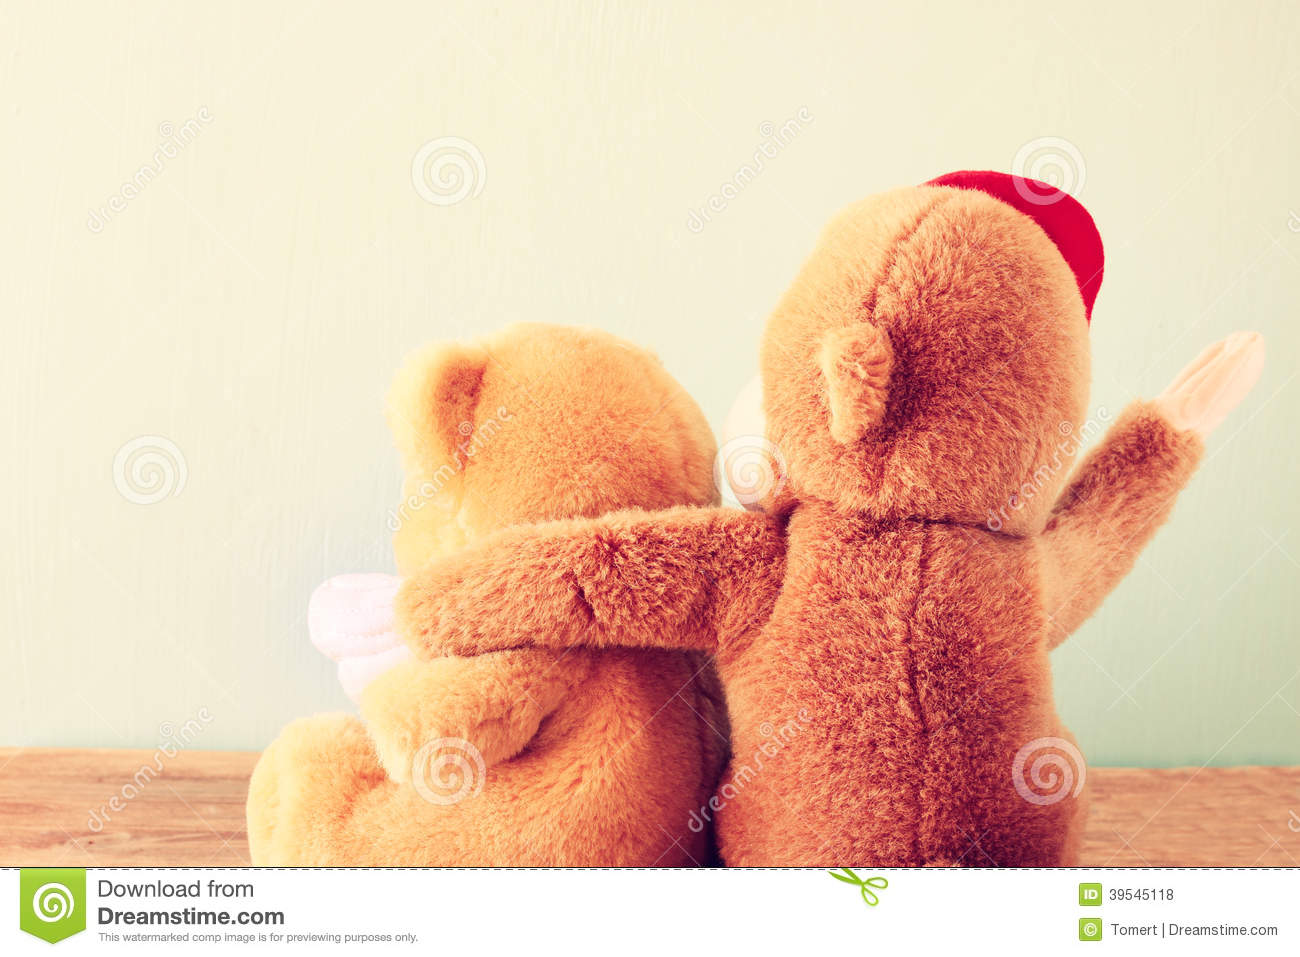 Two teddy bears on a shelf with arms around each other.